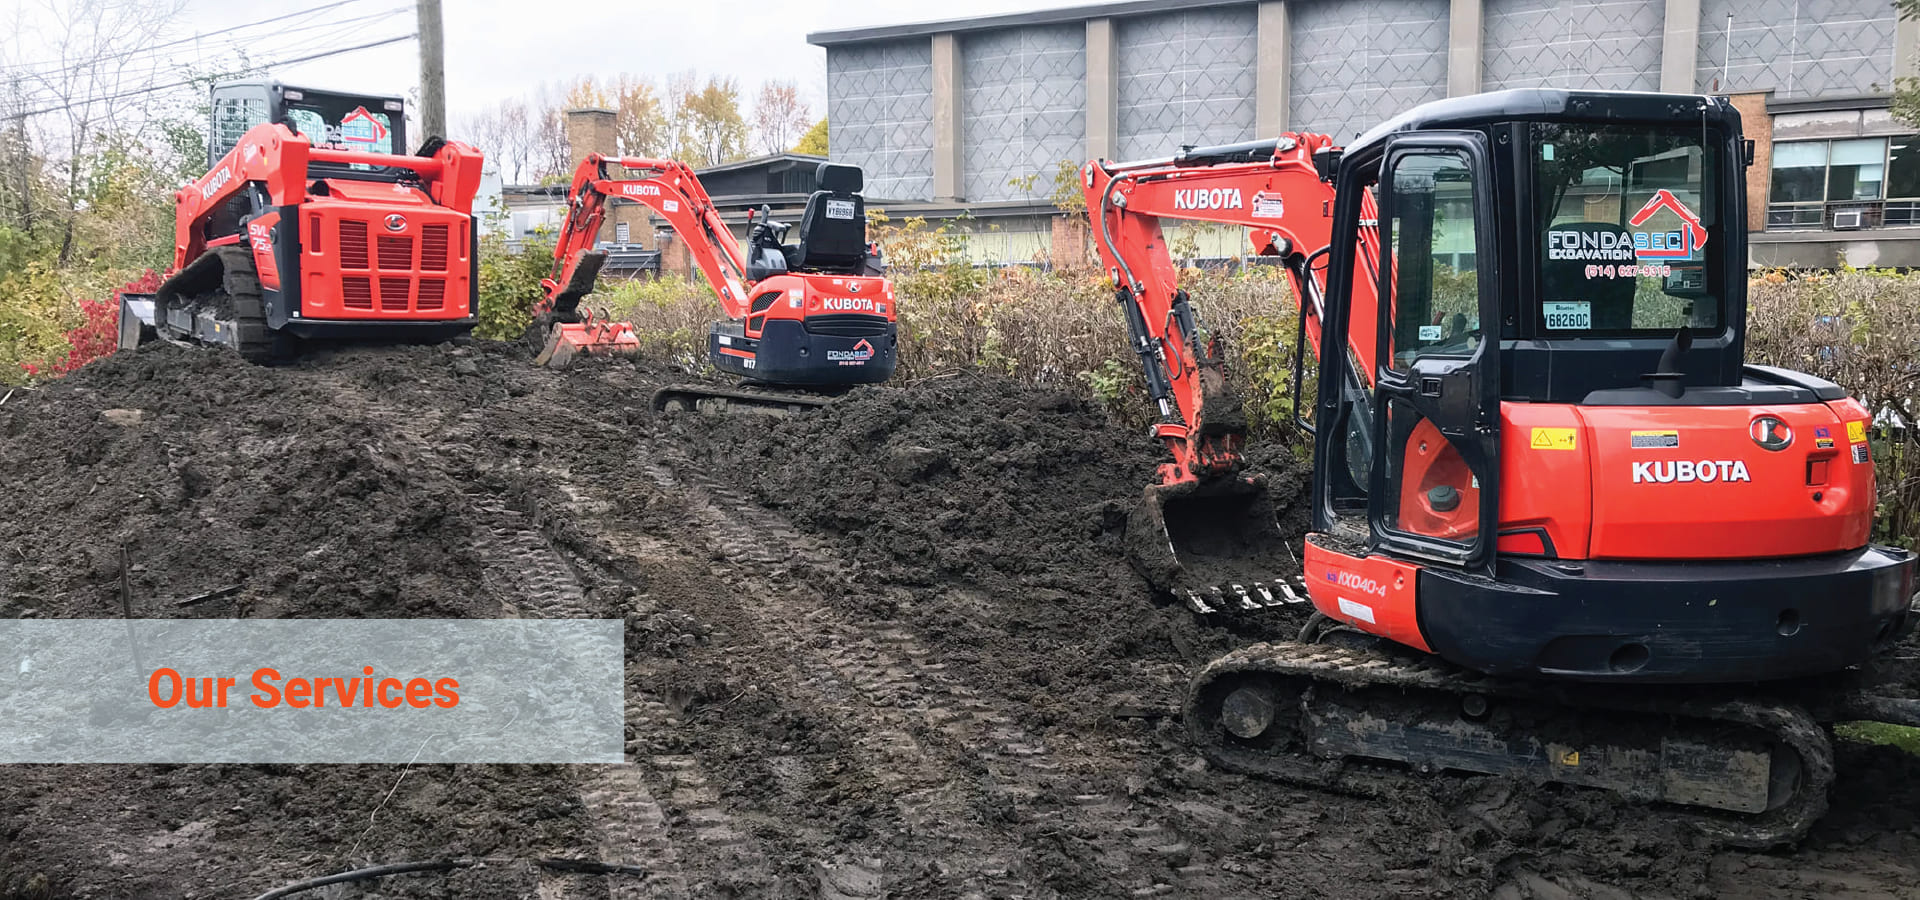 Fondasec Excavation services for the greater Montreal area, include Excavation, Demolition, Pyrite removal & Foundation services. | Fondasec.com